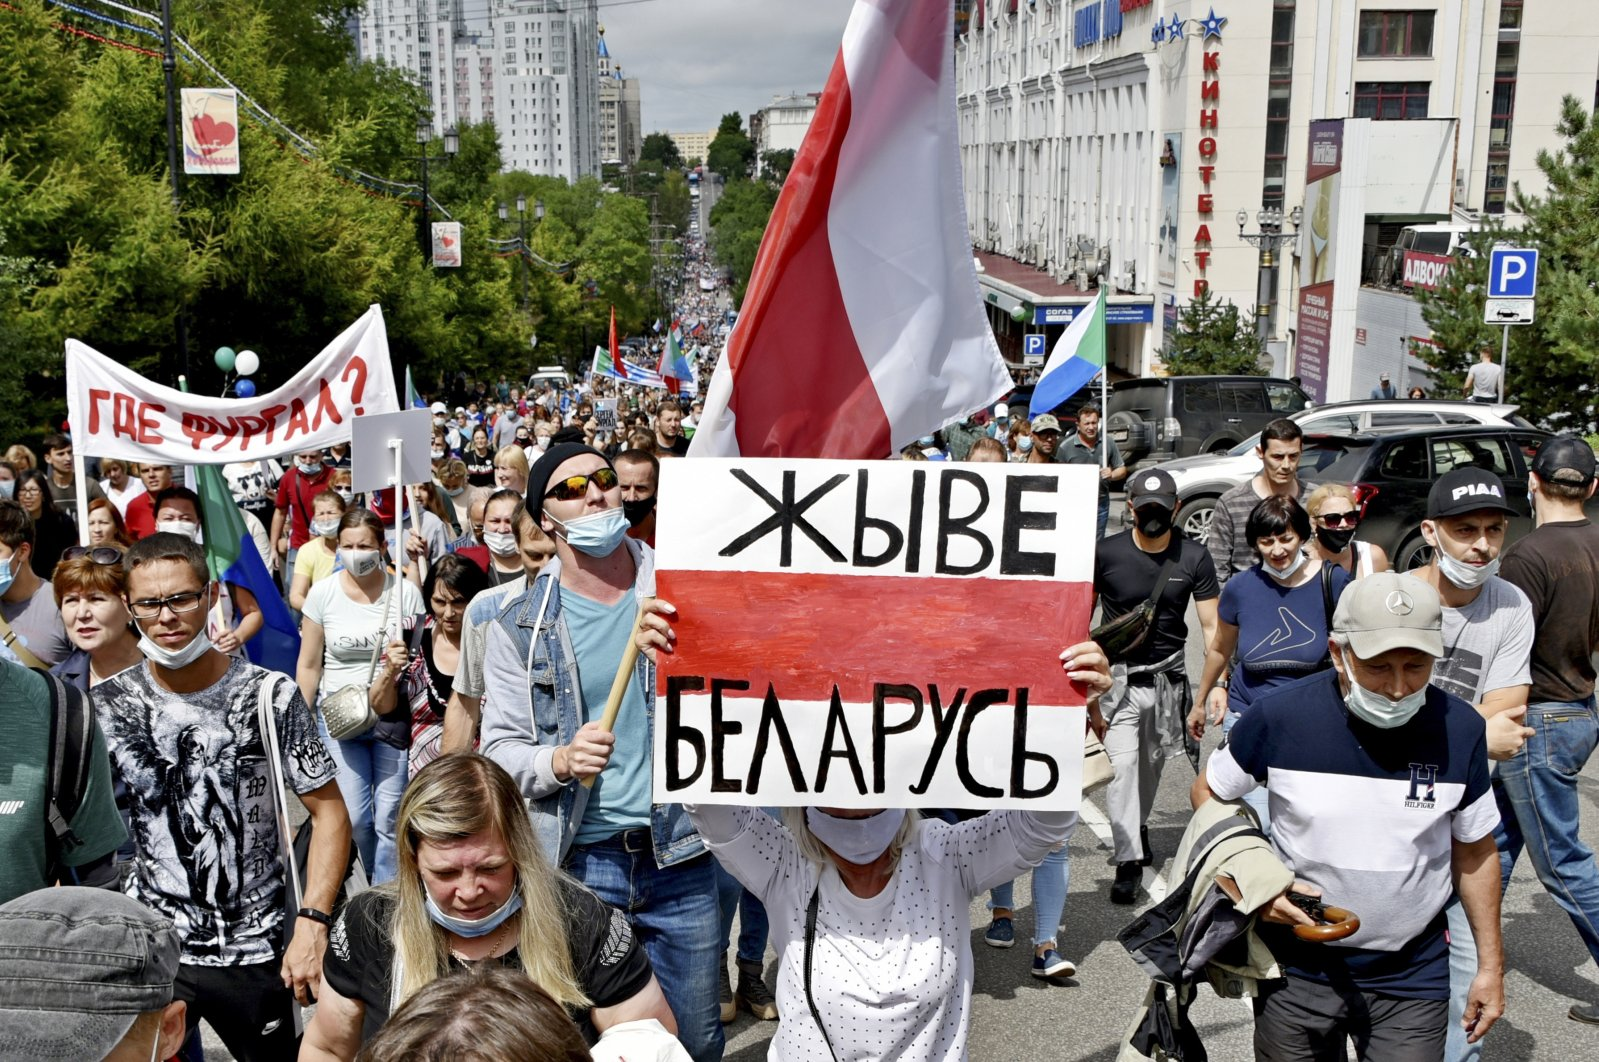 """People hold a poster reading """"Long live Belarus"""" during an unsanctioned protest in support of Sergei Furgal, the governor of the Khabarovsk region, in Khabarovsk, 6,100 kilometers (3,800 miles) east of Moscow, Russia, Saturday, Aug. 15, 2020. (AP Photo)"""